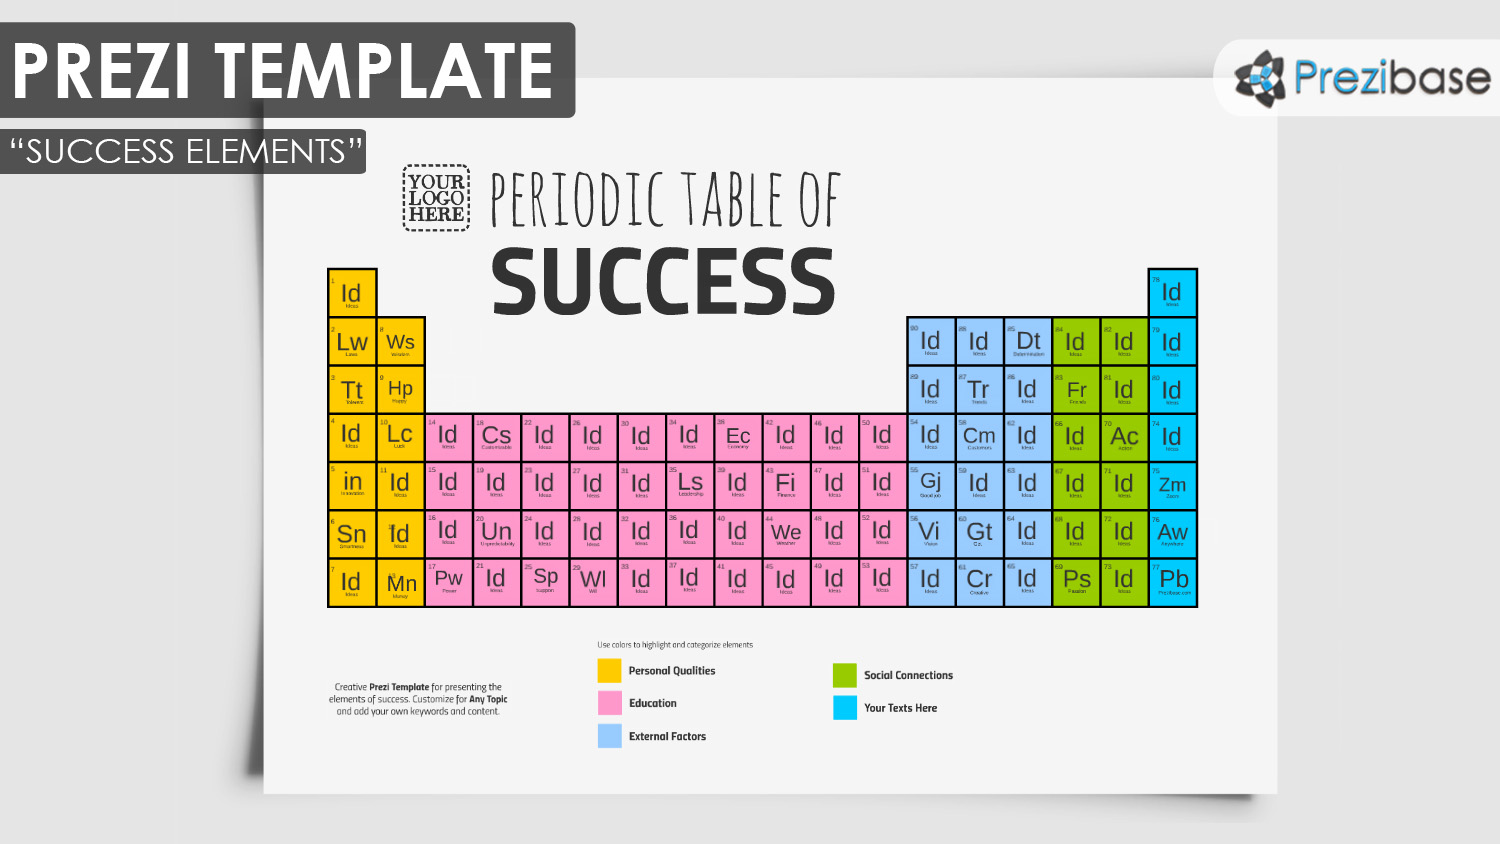 prezi templates  success elements periodic table of ideas prezi template creative